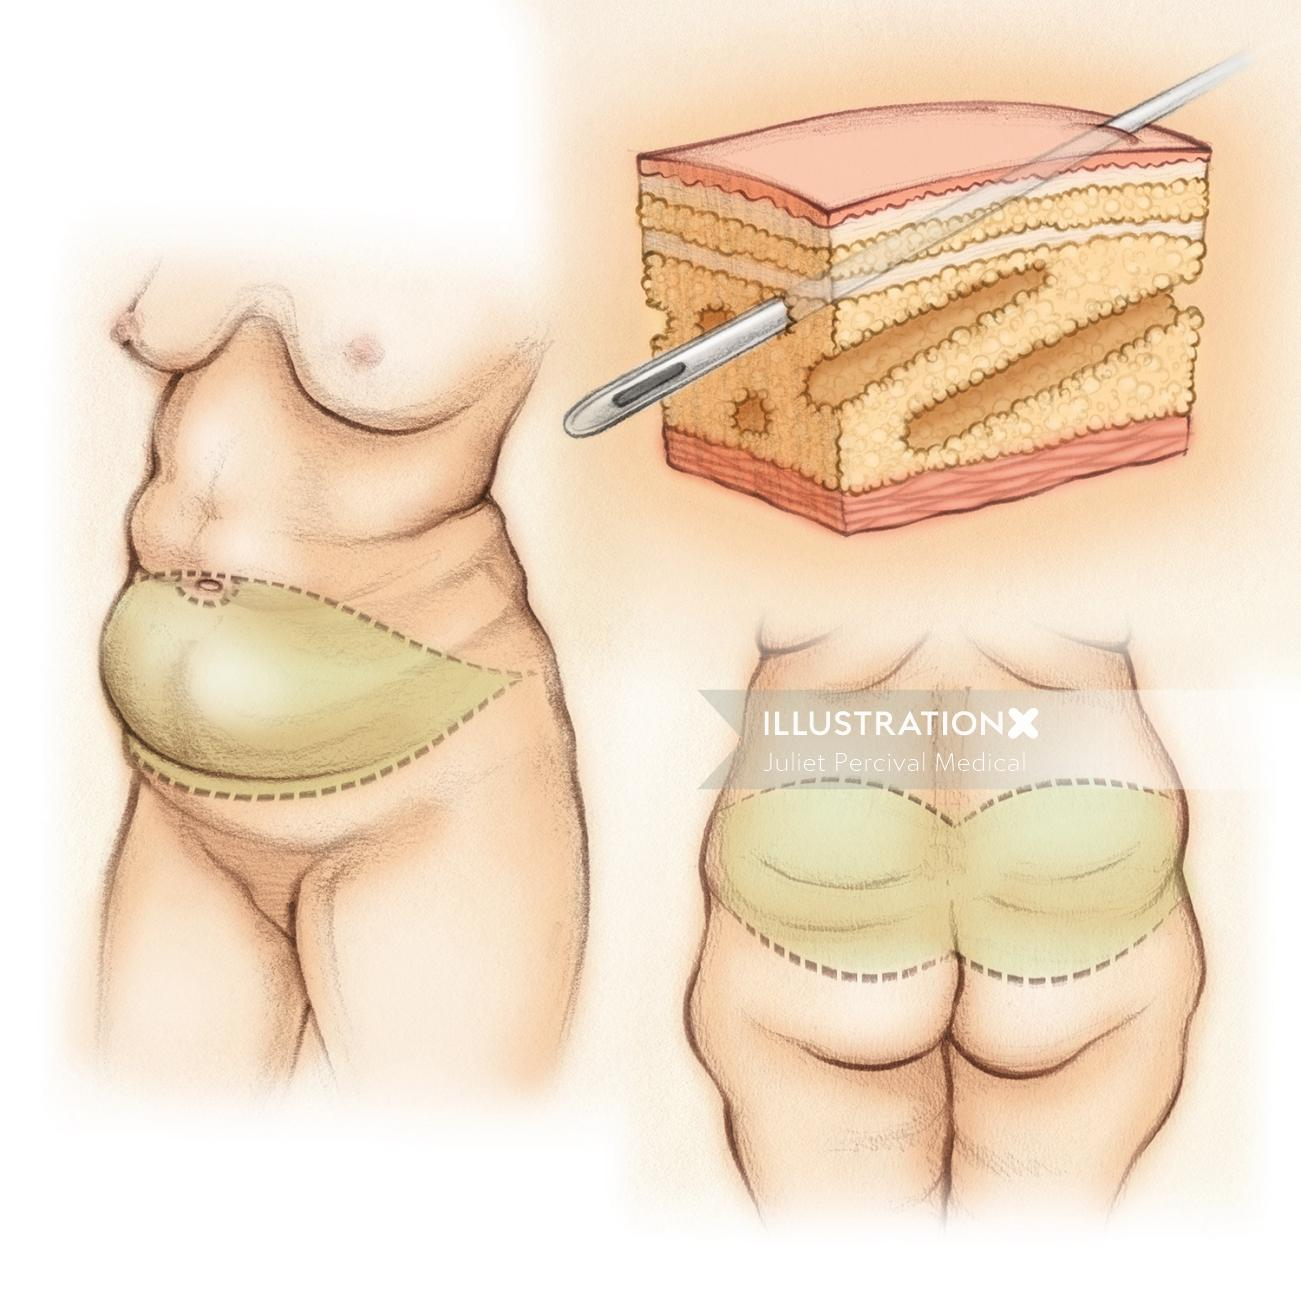 tummy tuck, cosmetic isurgery, back lift, subcutaneous fat